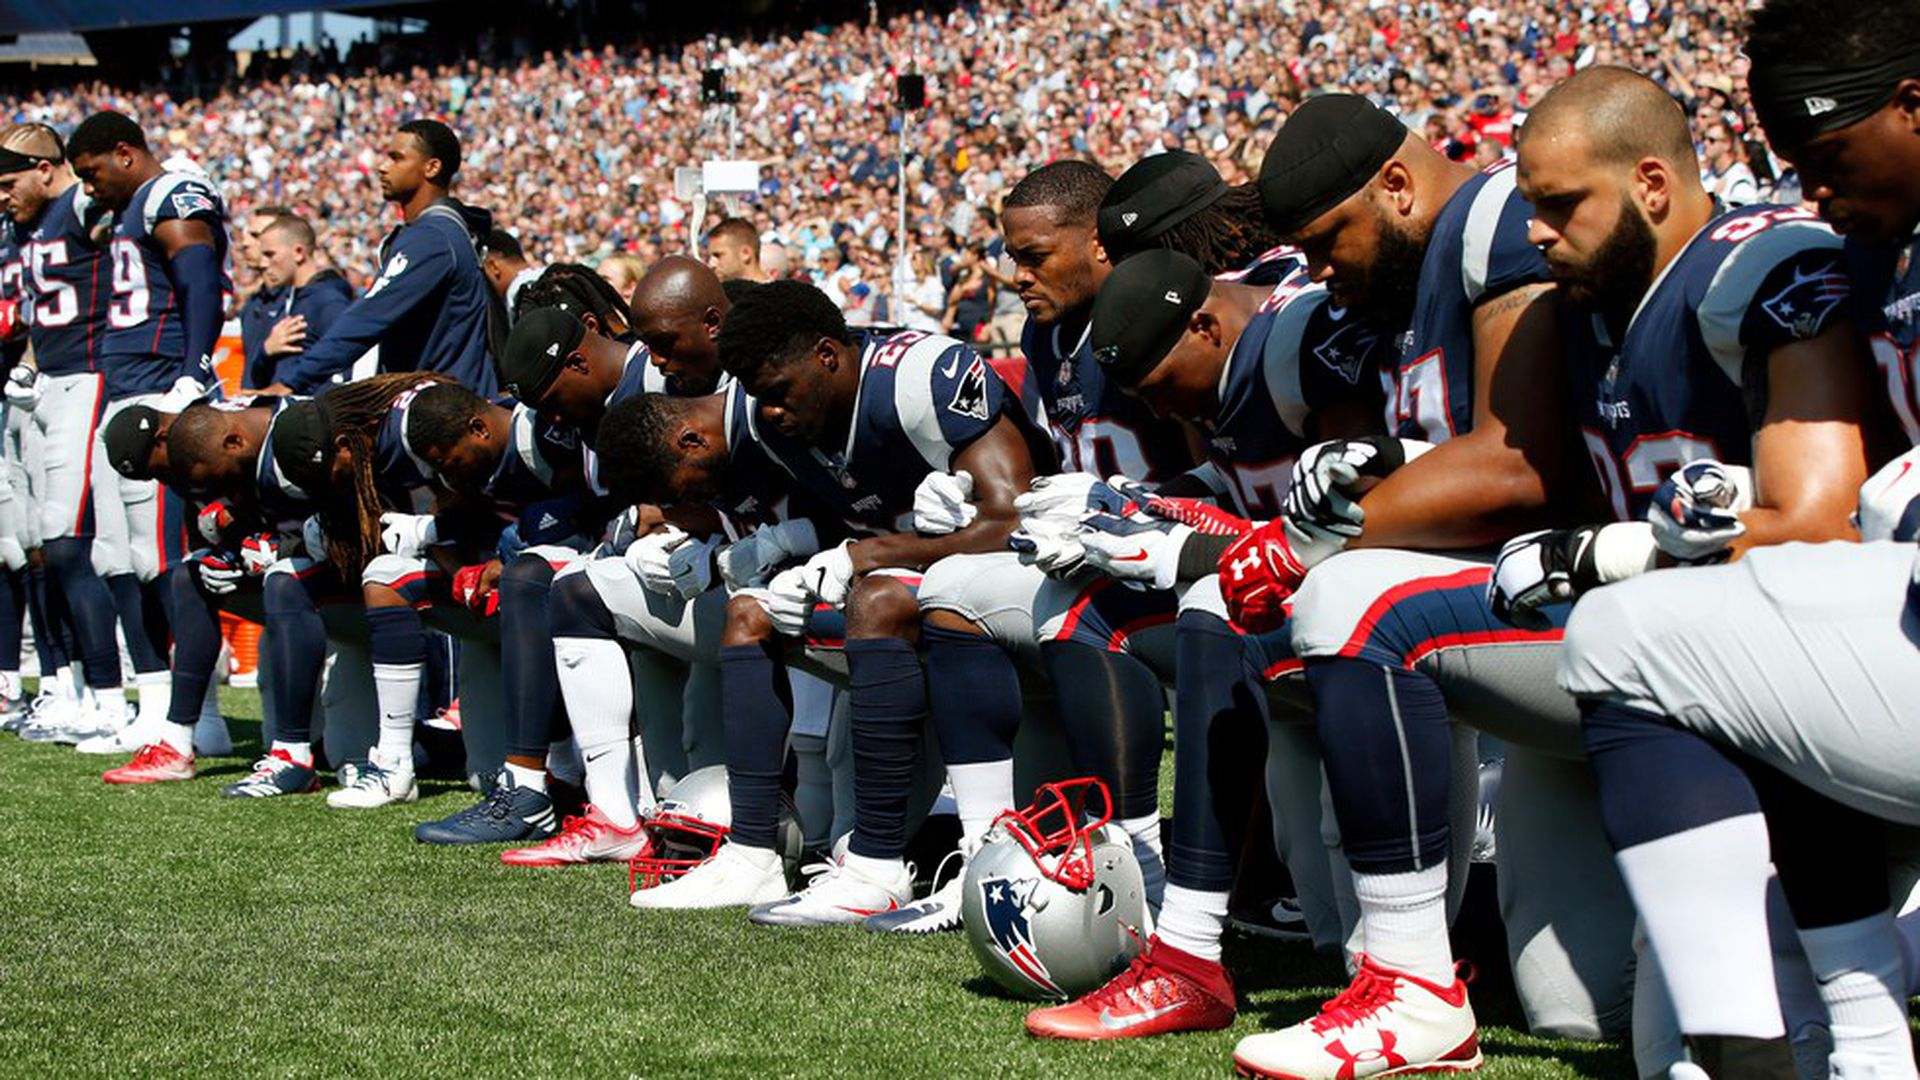 The NFL's day of protest